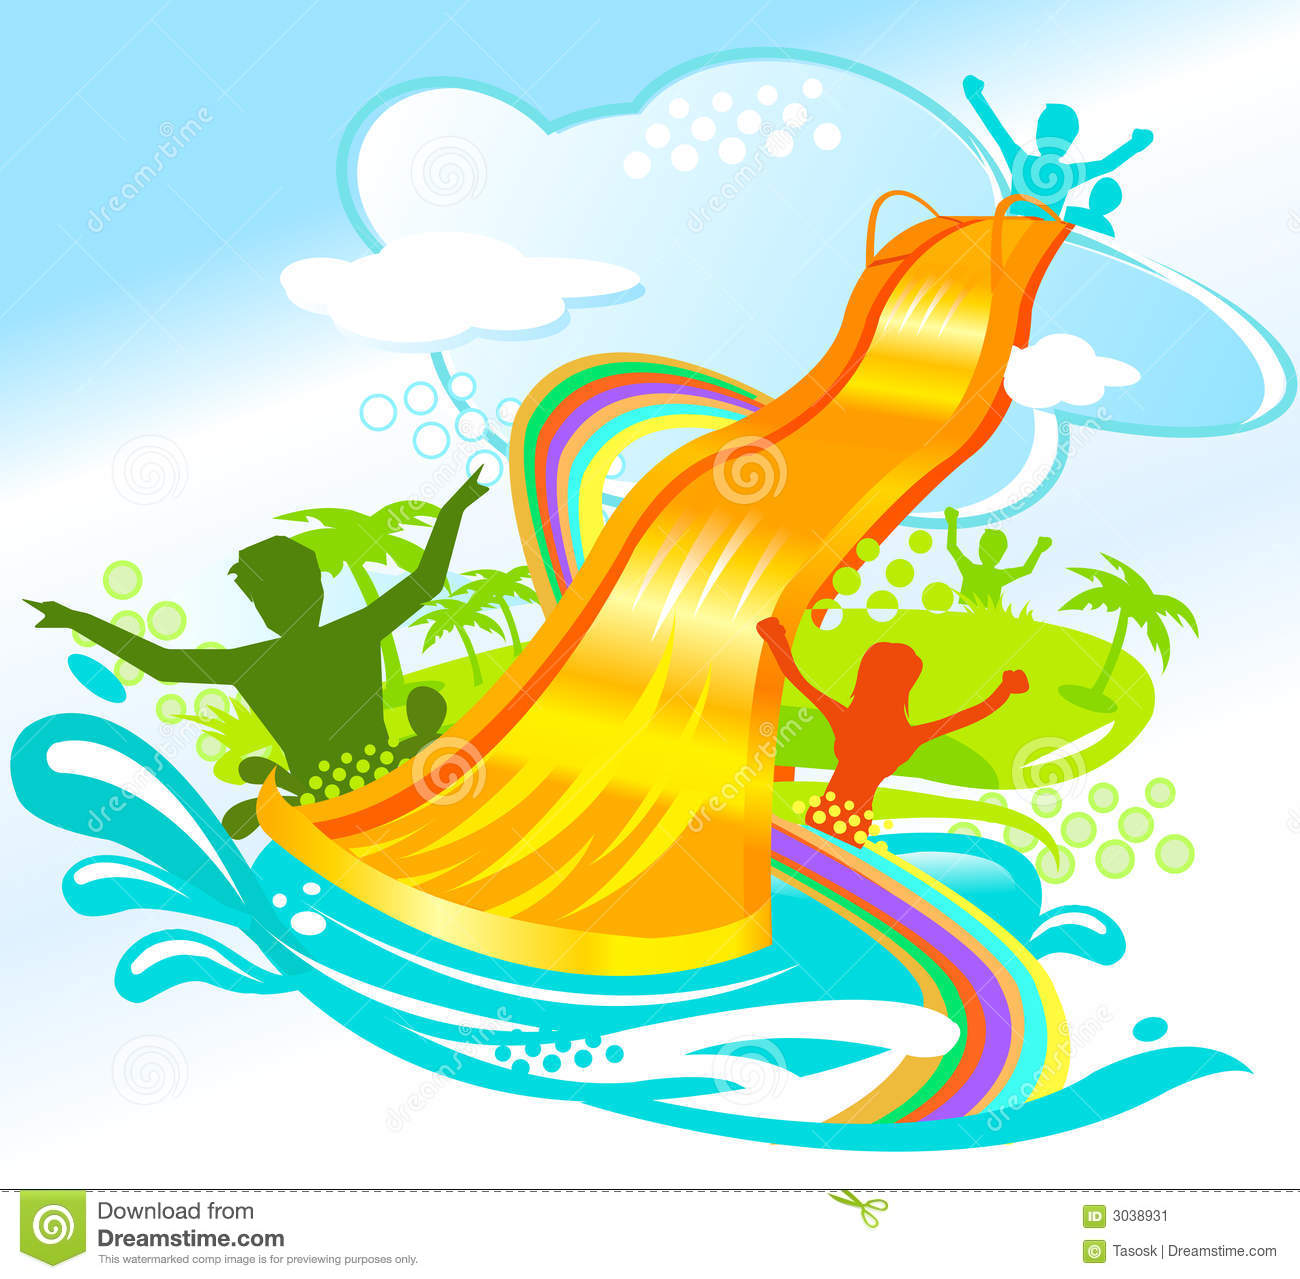 Water fun clipart 3 » Clipart Station.